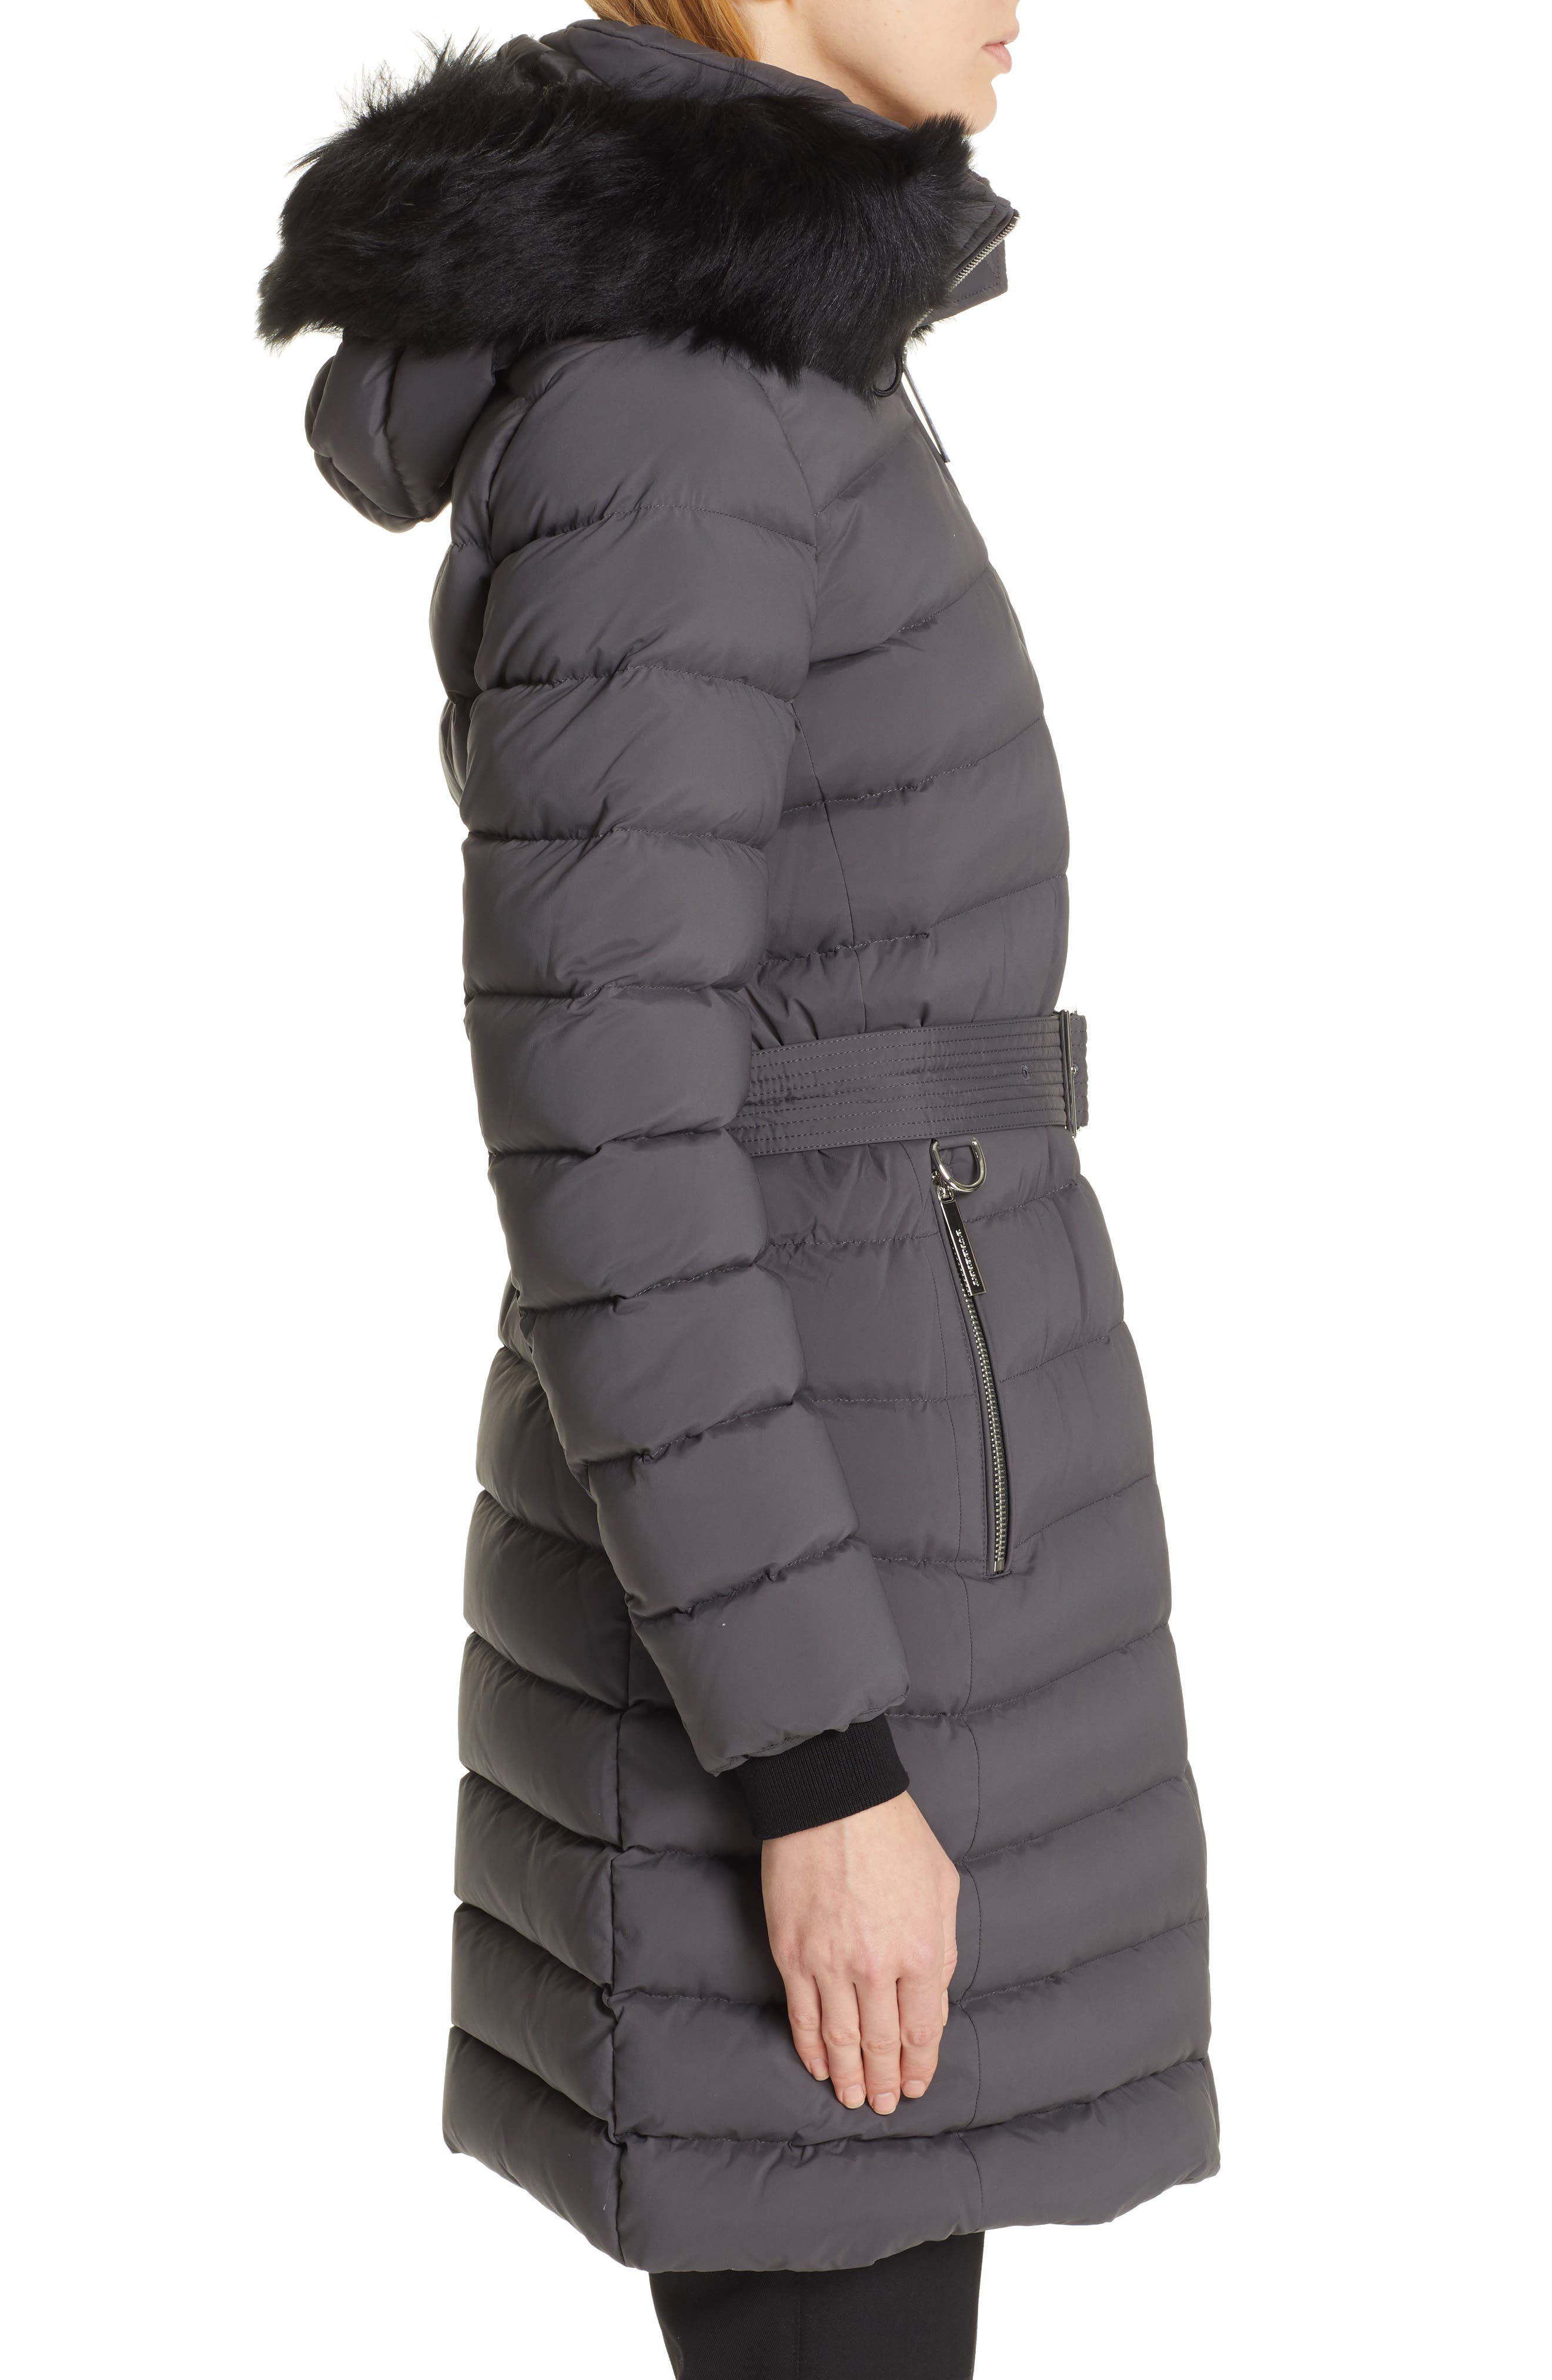 BURBERRY, Limehouse Quilted Down Puffer Coat with Removable Genuine Shearling Trim, Alternate thumbnail 5, color, MID GREY